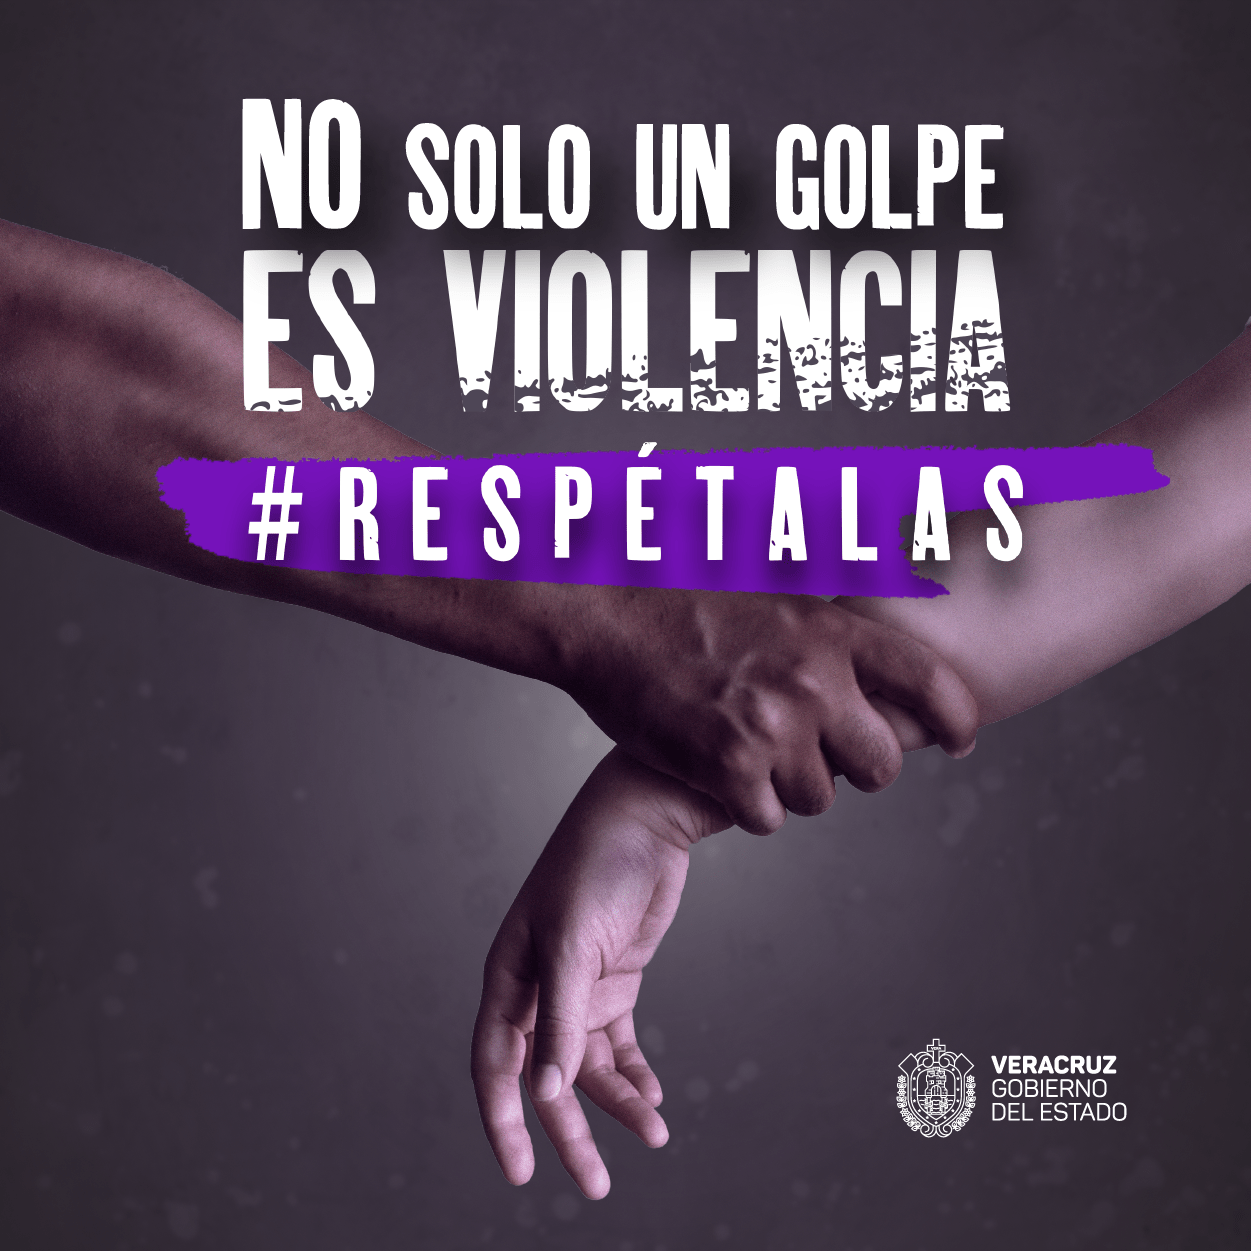 201015- BANNERS LUCHA VIOLENCIA CONTRA MUJER 2020 – RRSS- VERSION 1_300x300-2.png